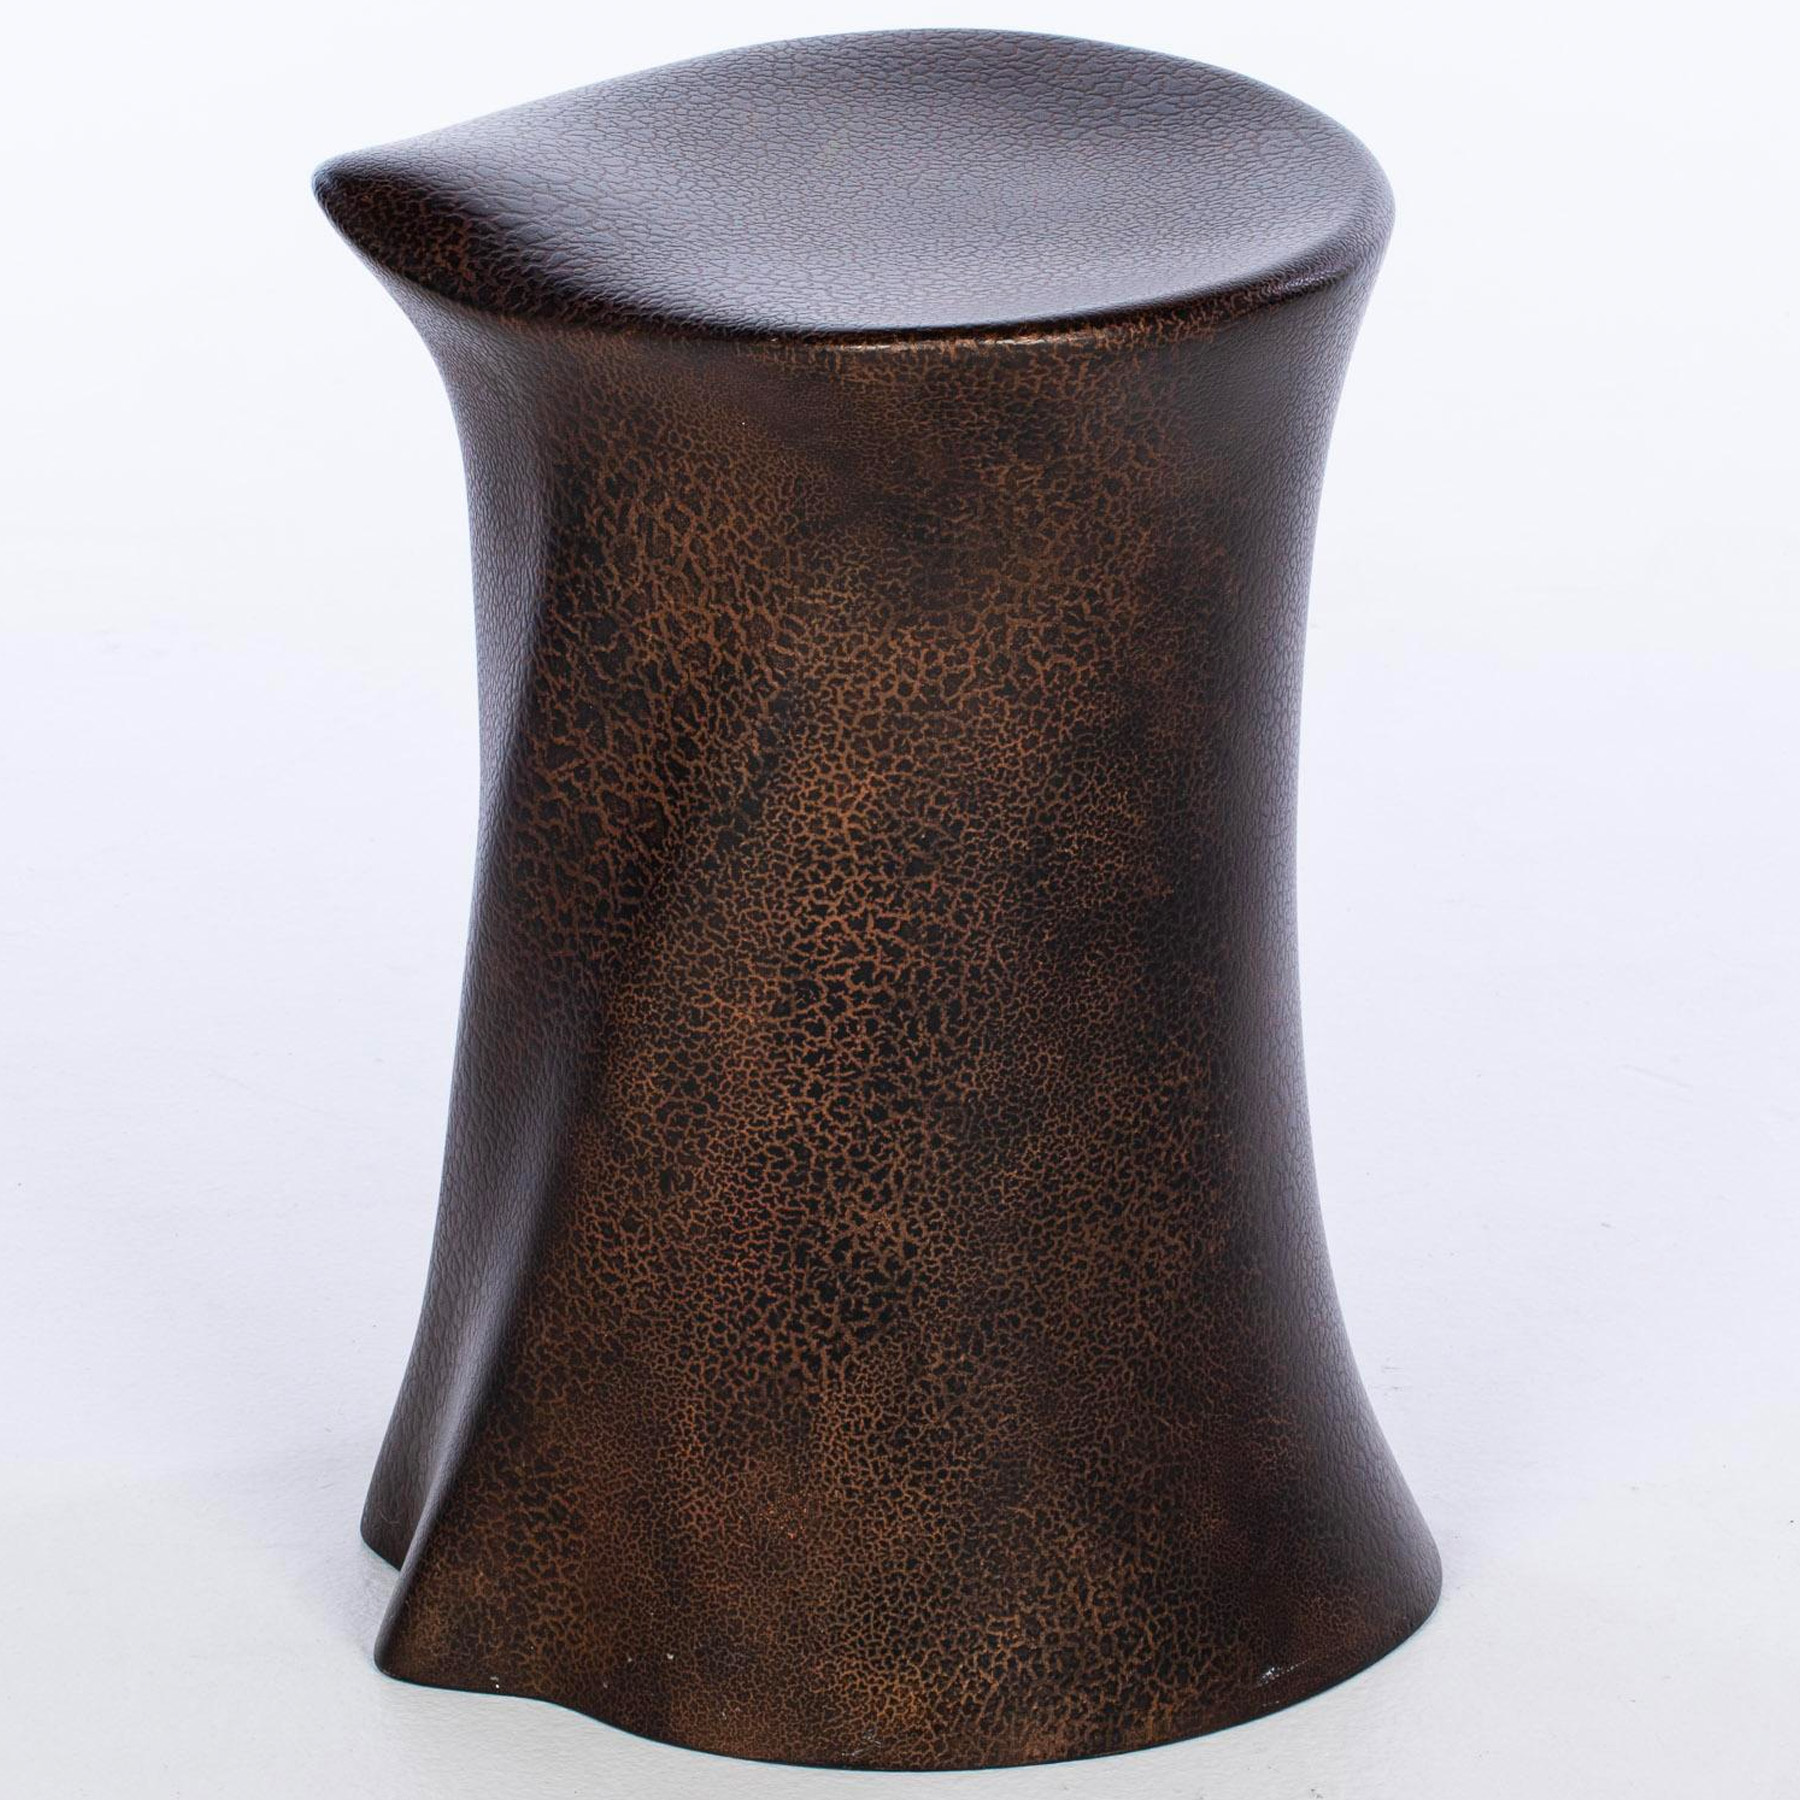 A rare Wendell Castle stump-form fiberglass stool, signed and numbered 69/04,1969